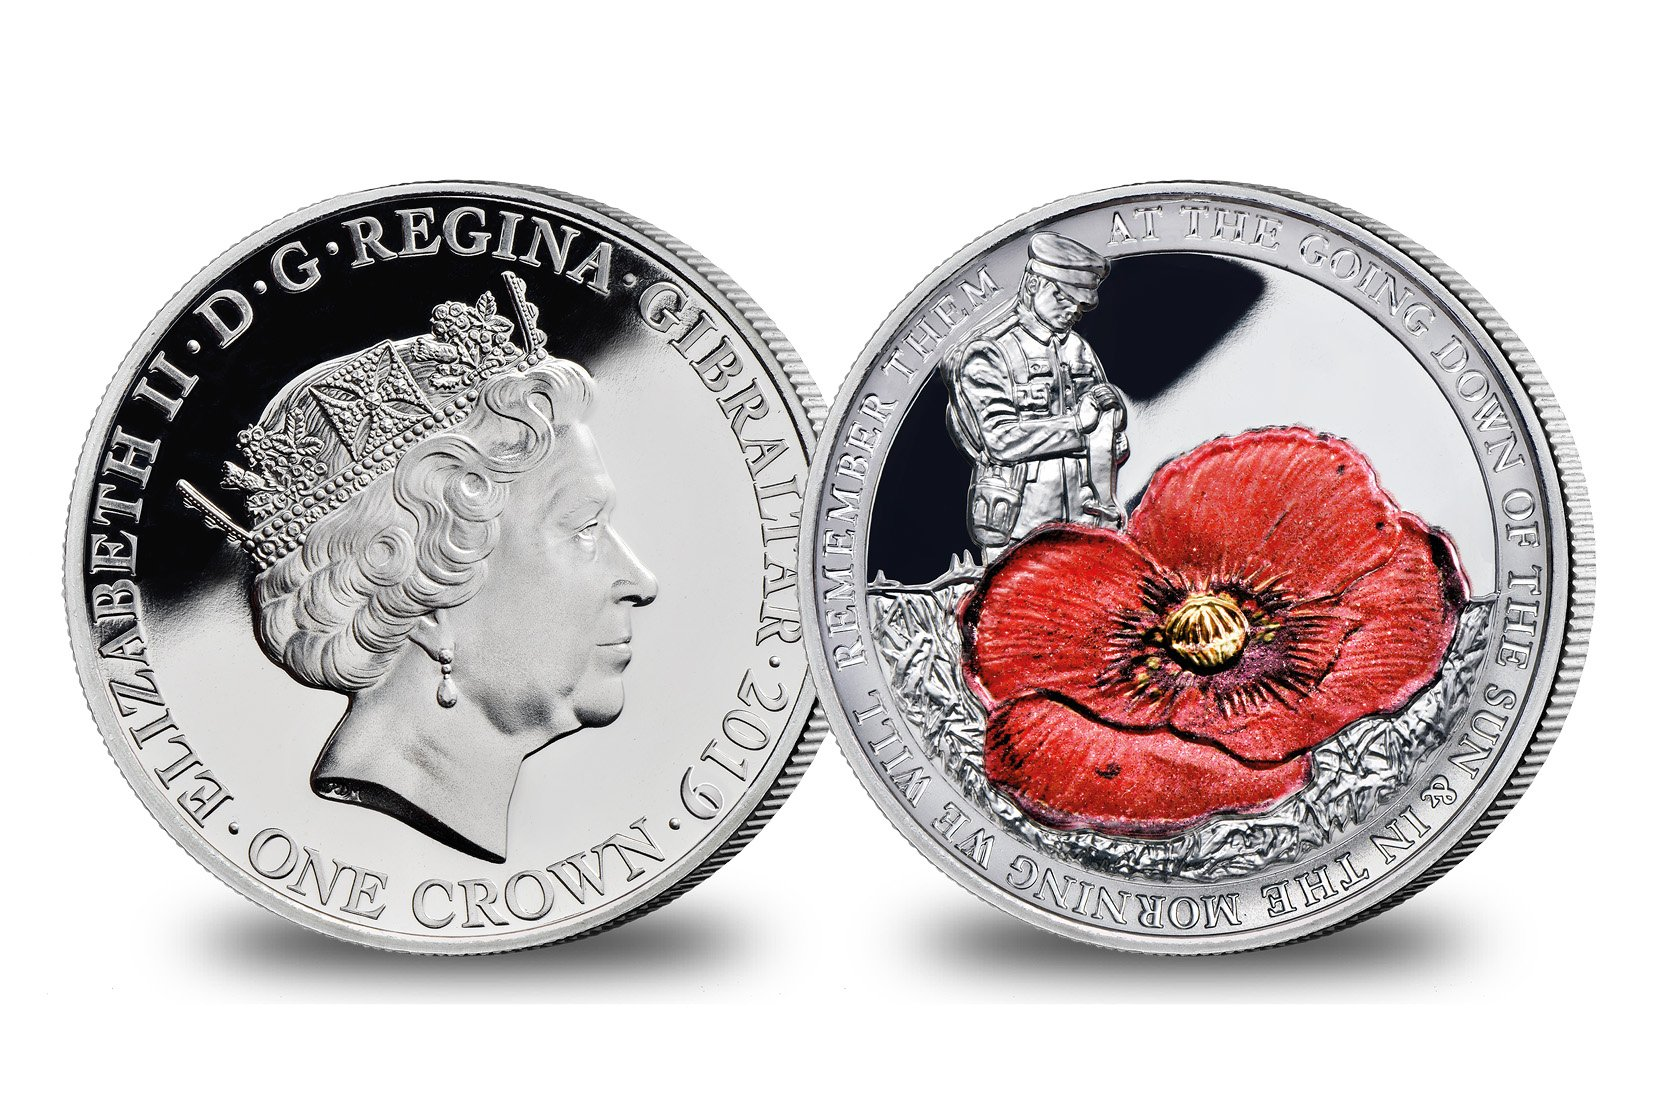 Remembrance Crown Coin